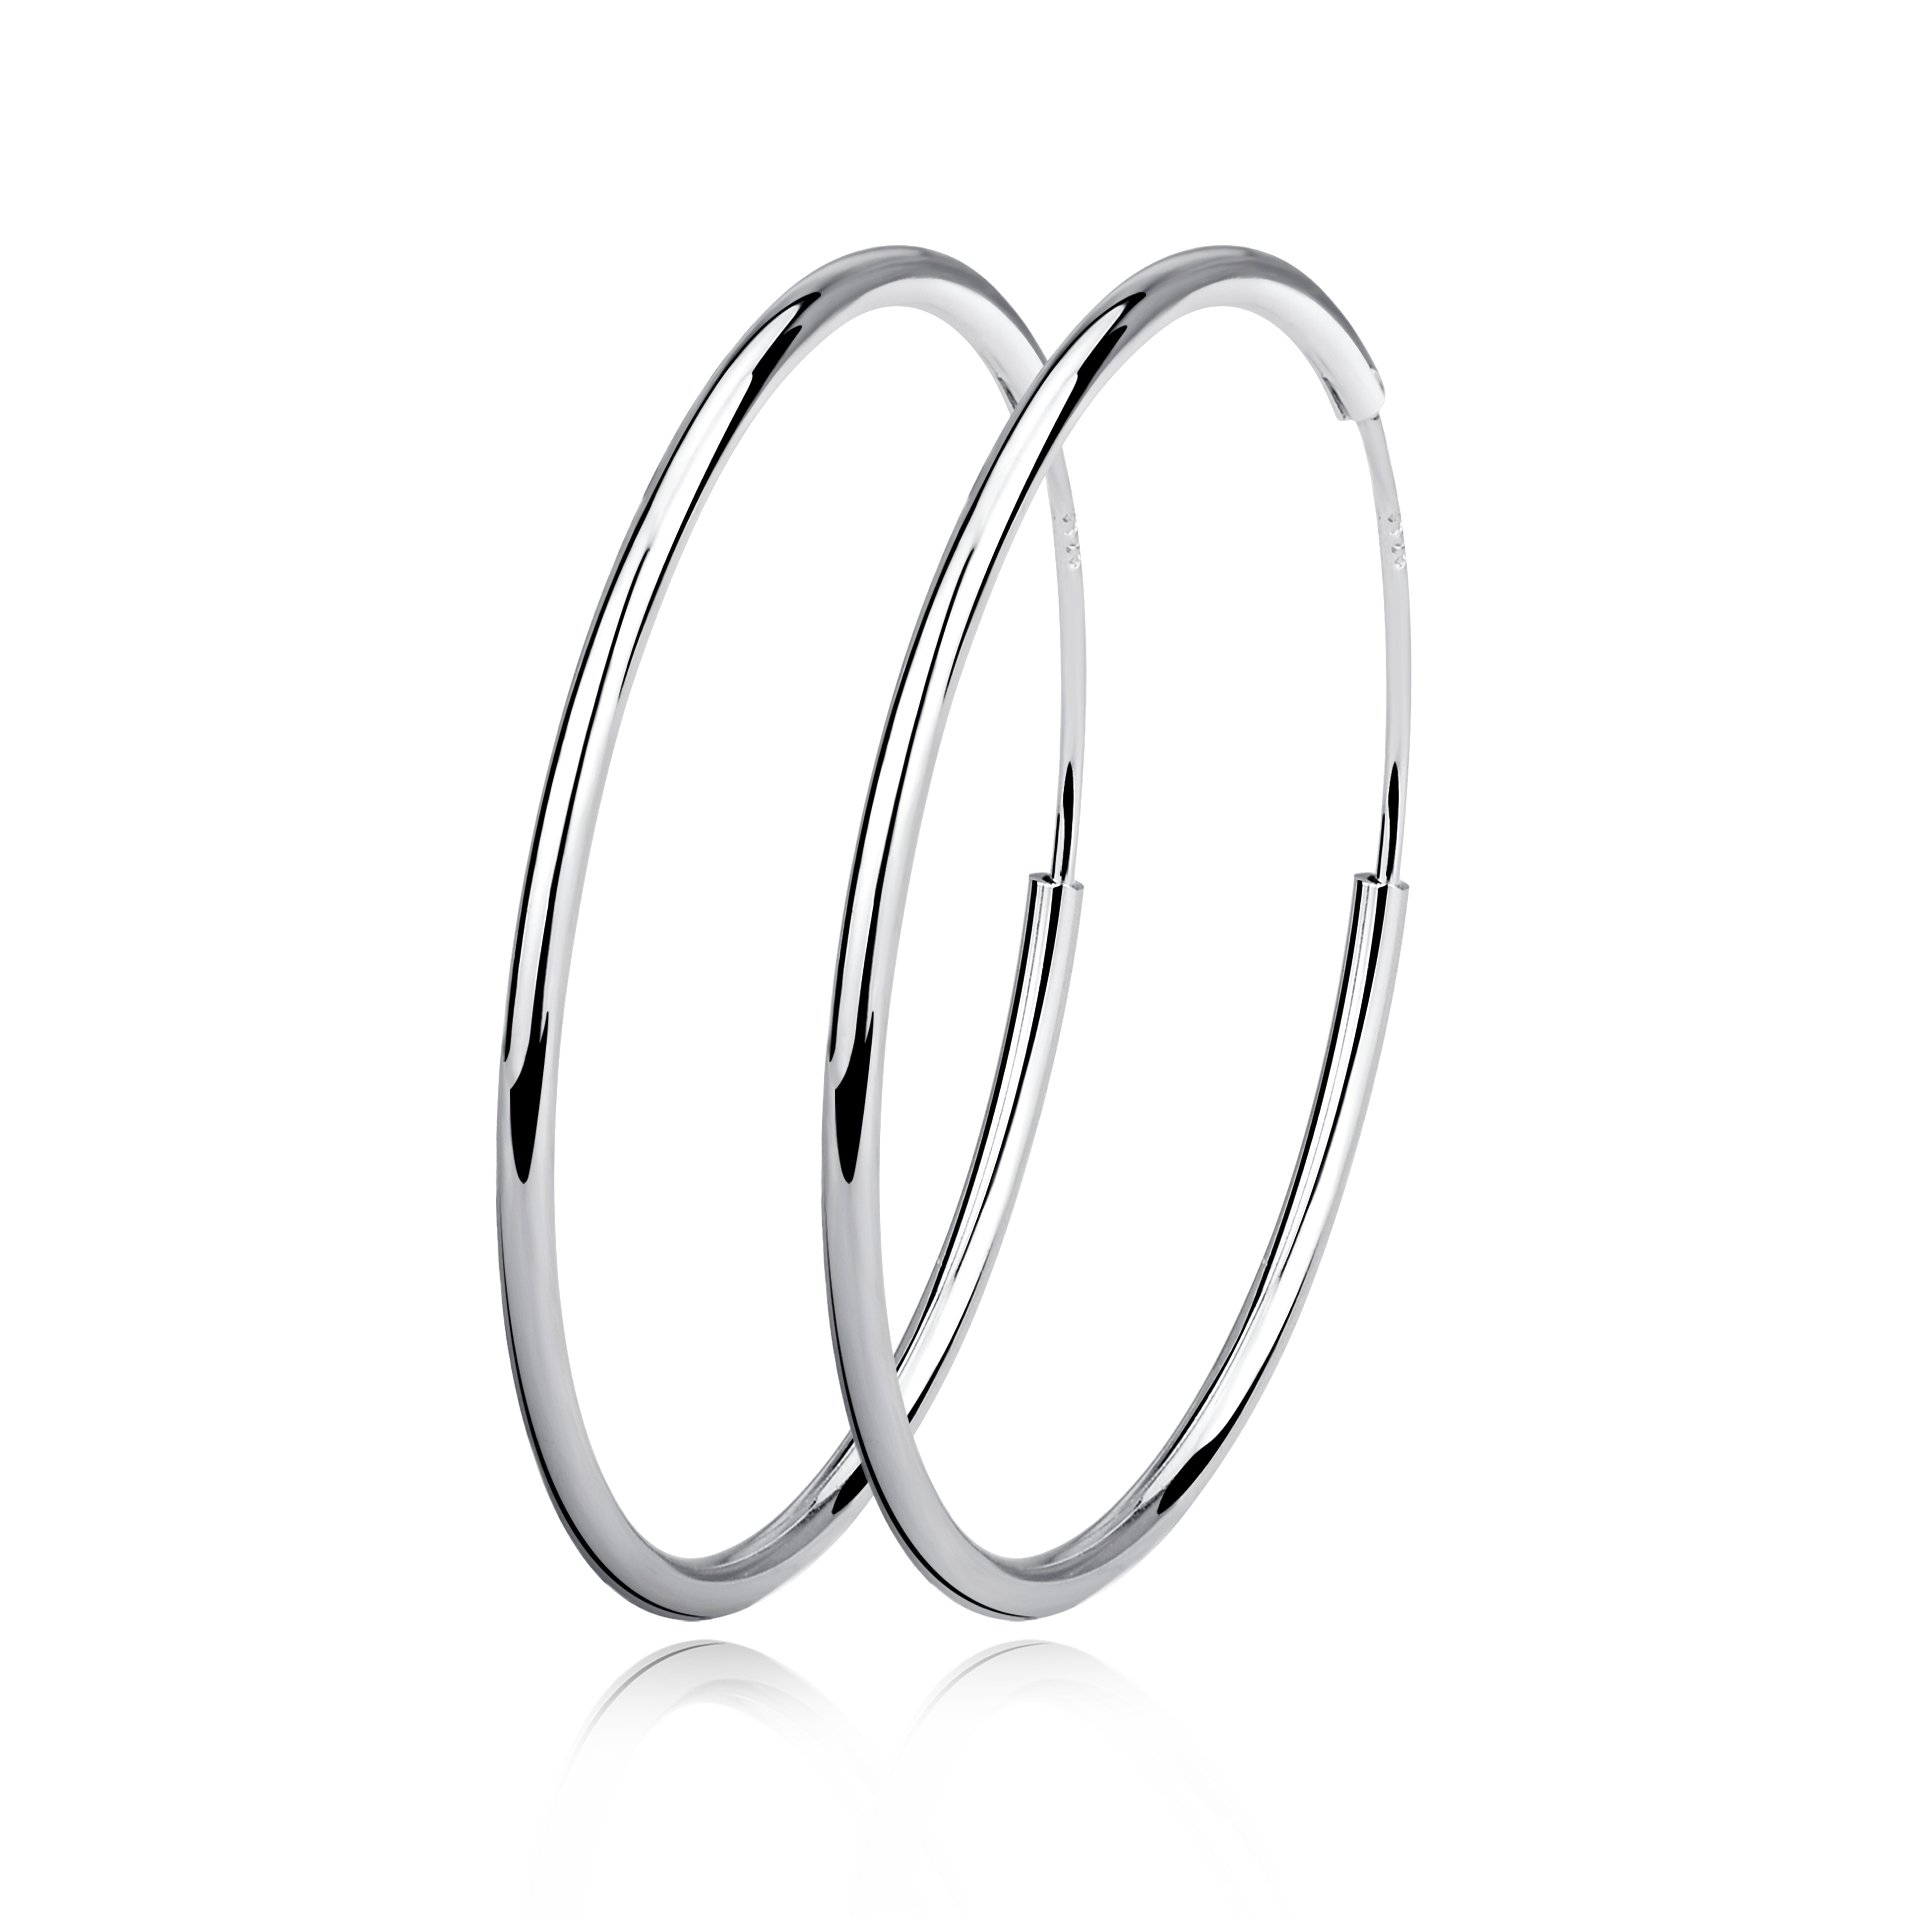 Sterling Silver Circle Endless Hoop Earrings - Jewelry for Women Girls,Daimeter 20,30,40,50,60mm (Diameter 60mm)